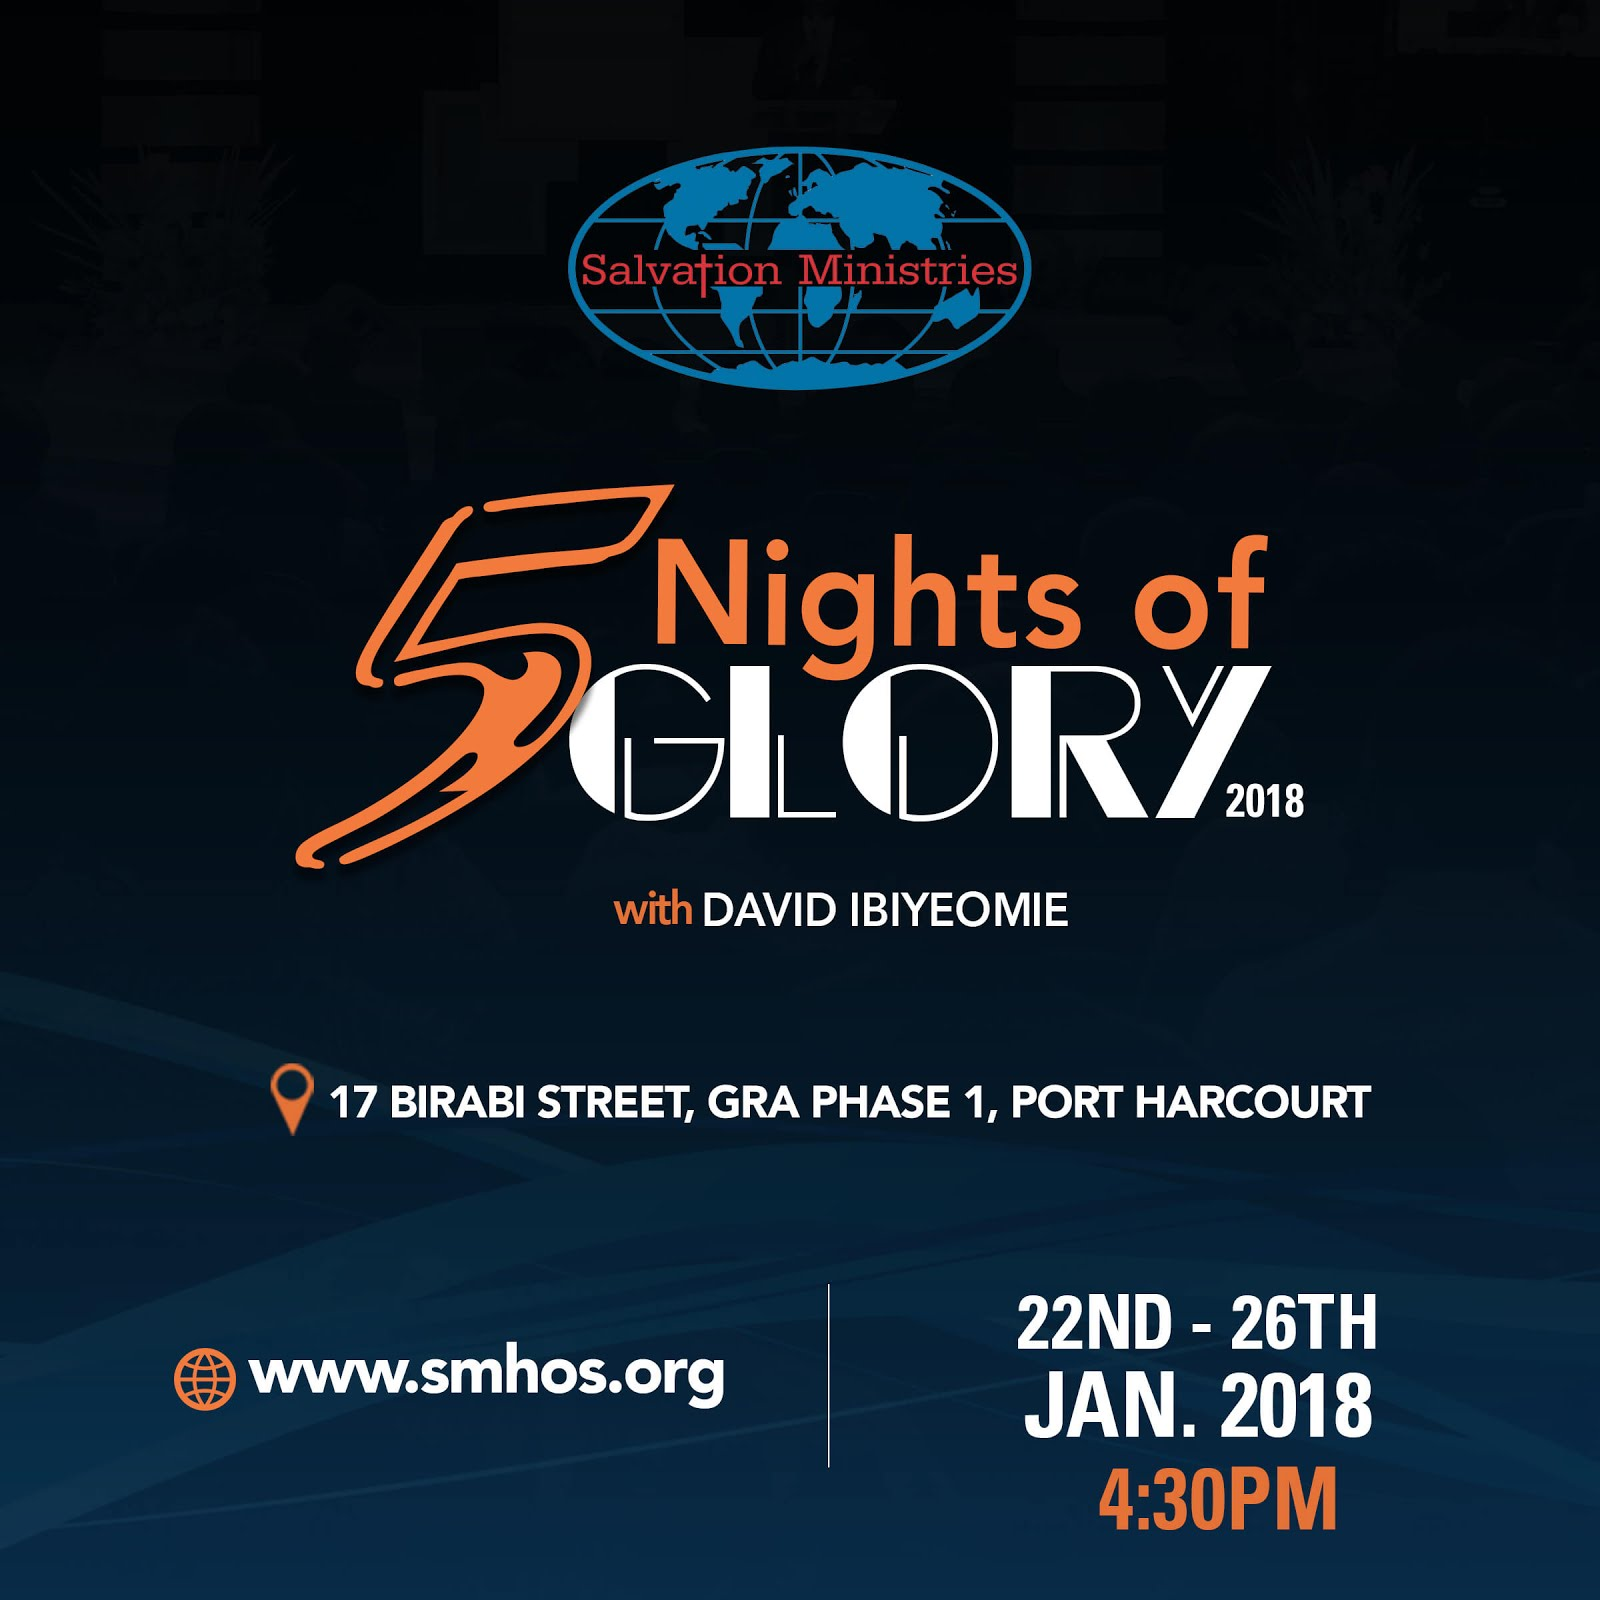 plan to attend